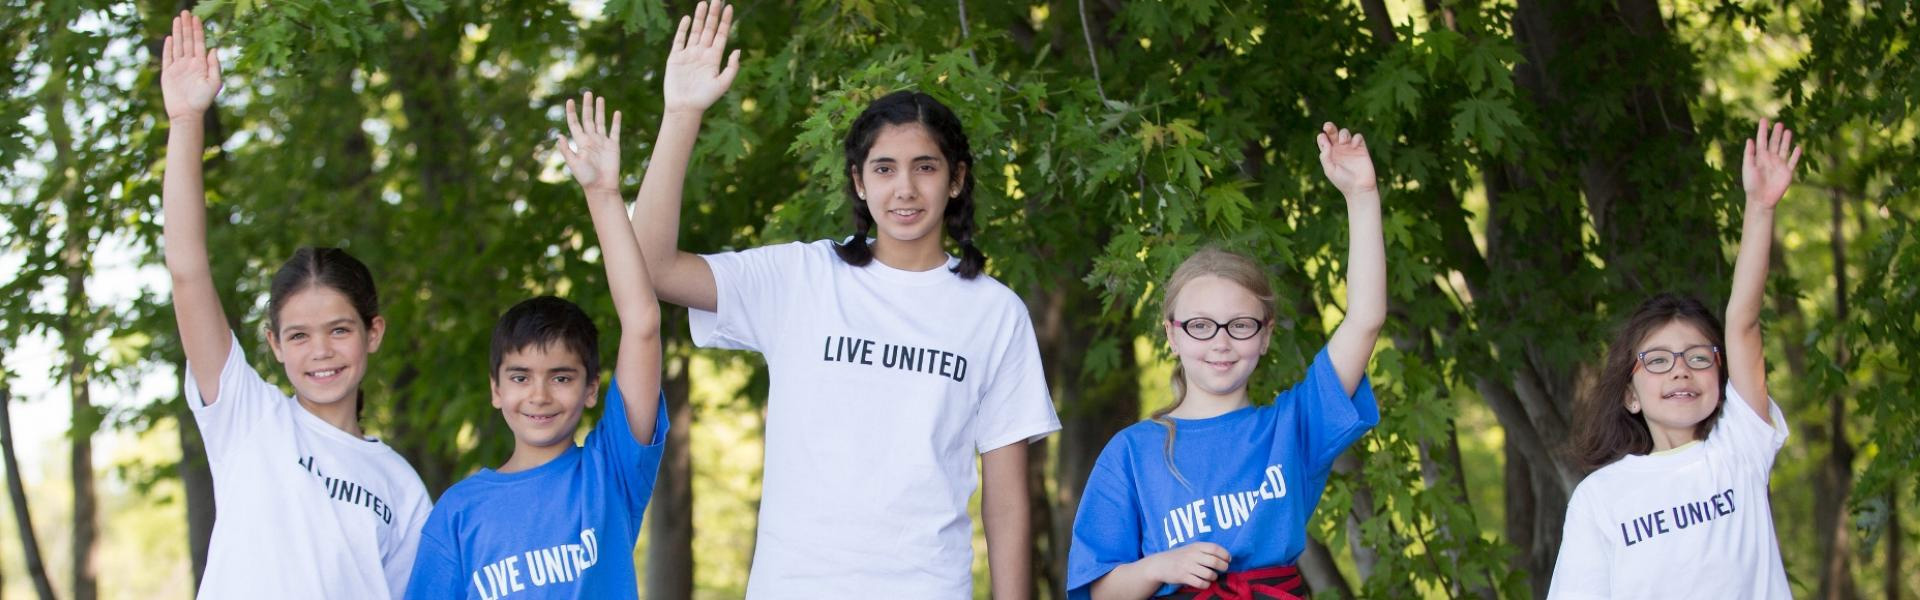 UNITED WAY OF RUTHERFORD COUNTY